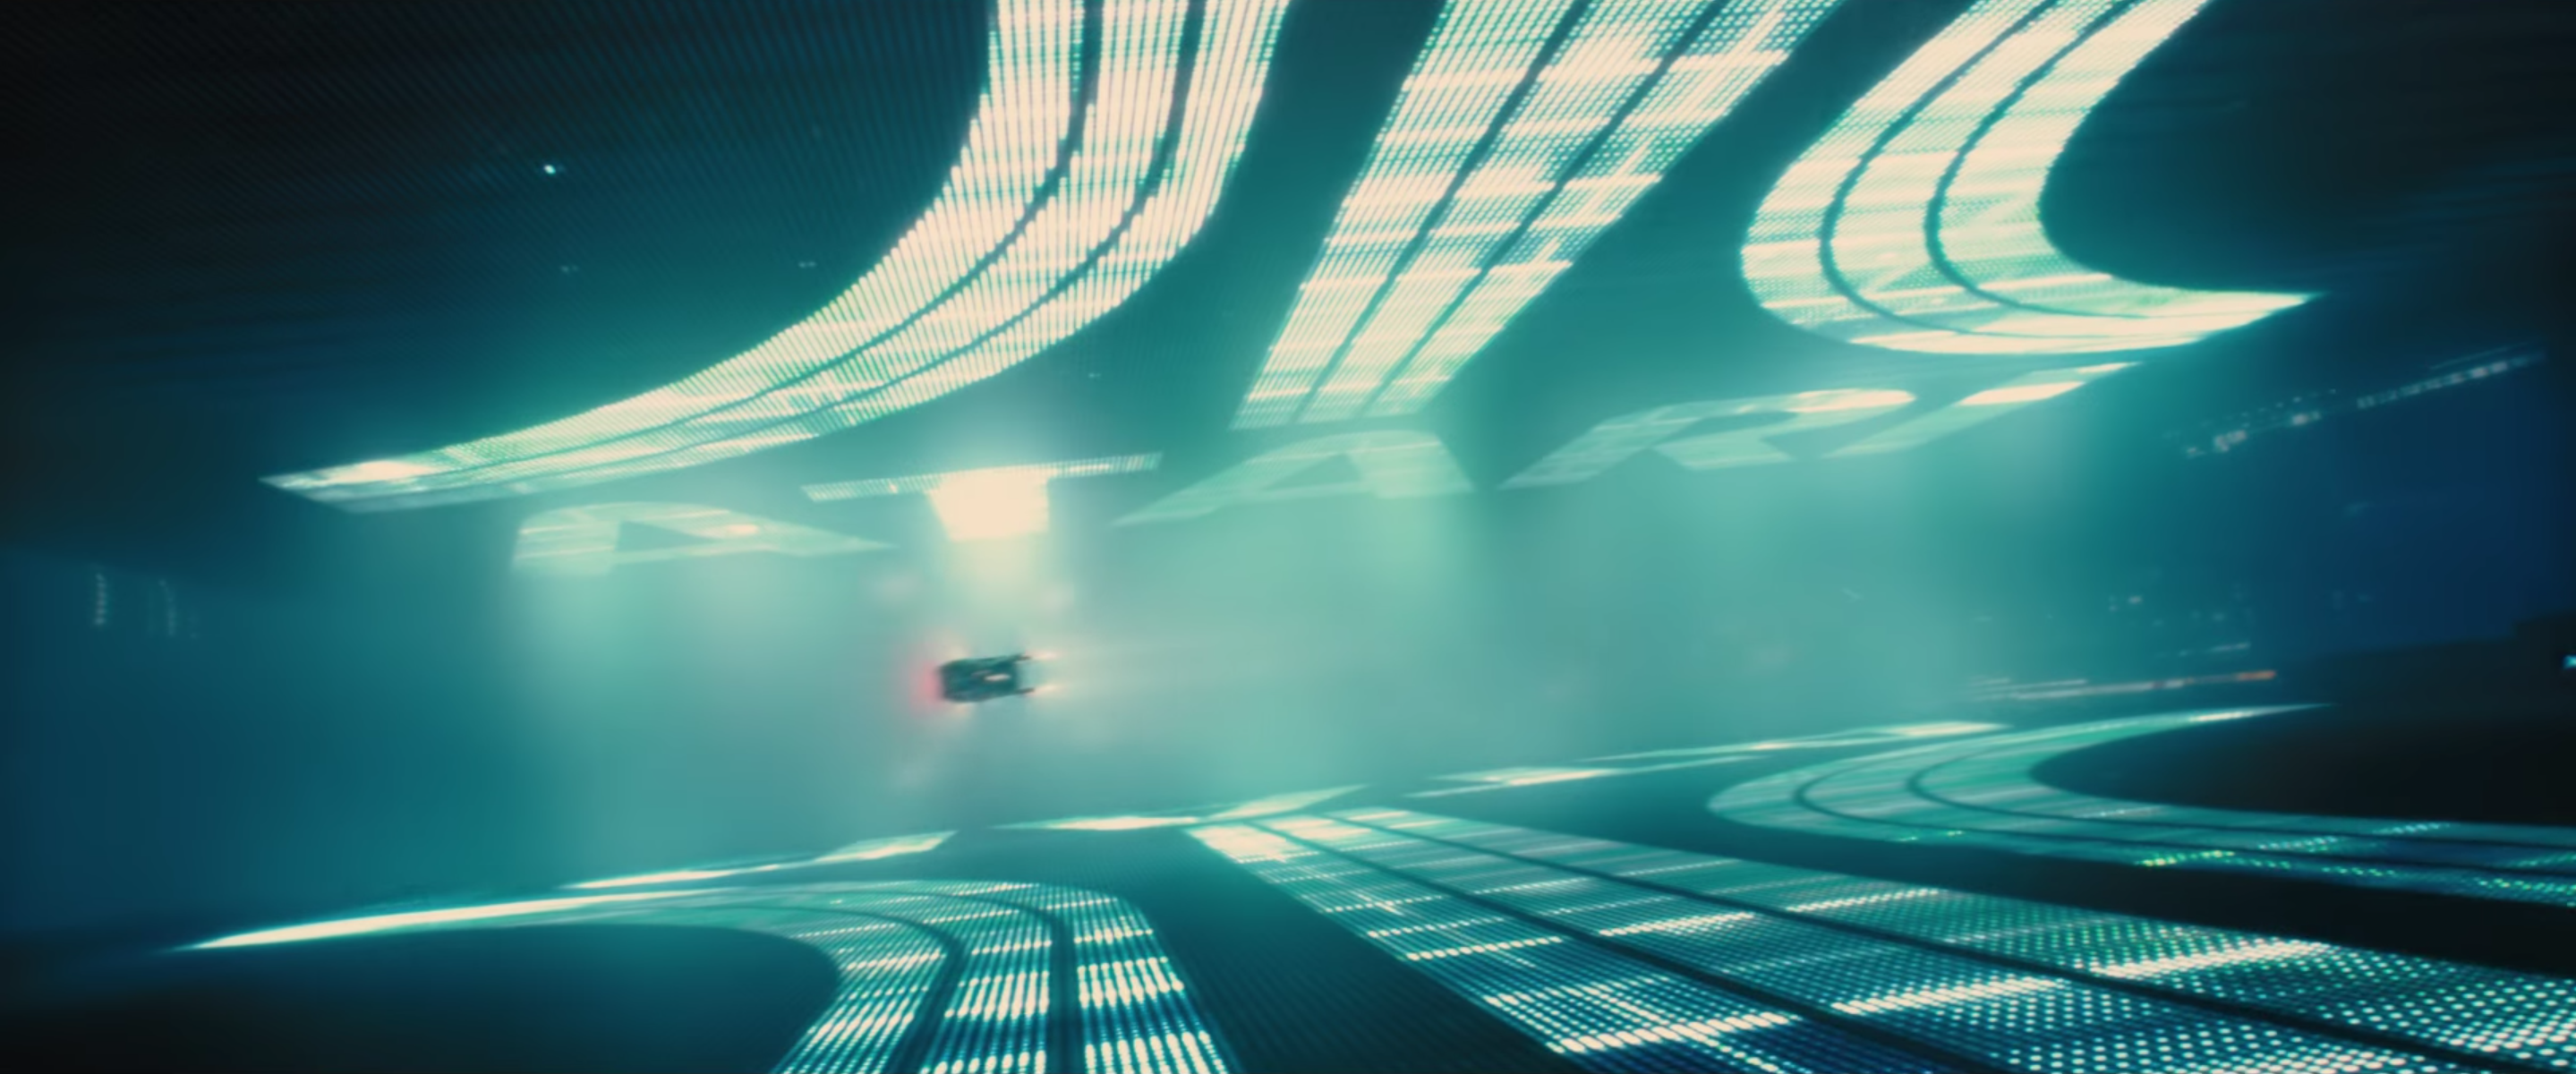 A Peak Inside The Cinematography Of Blade Runner 2049 A